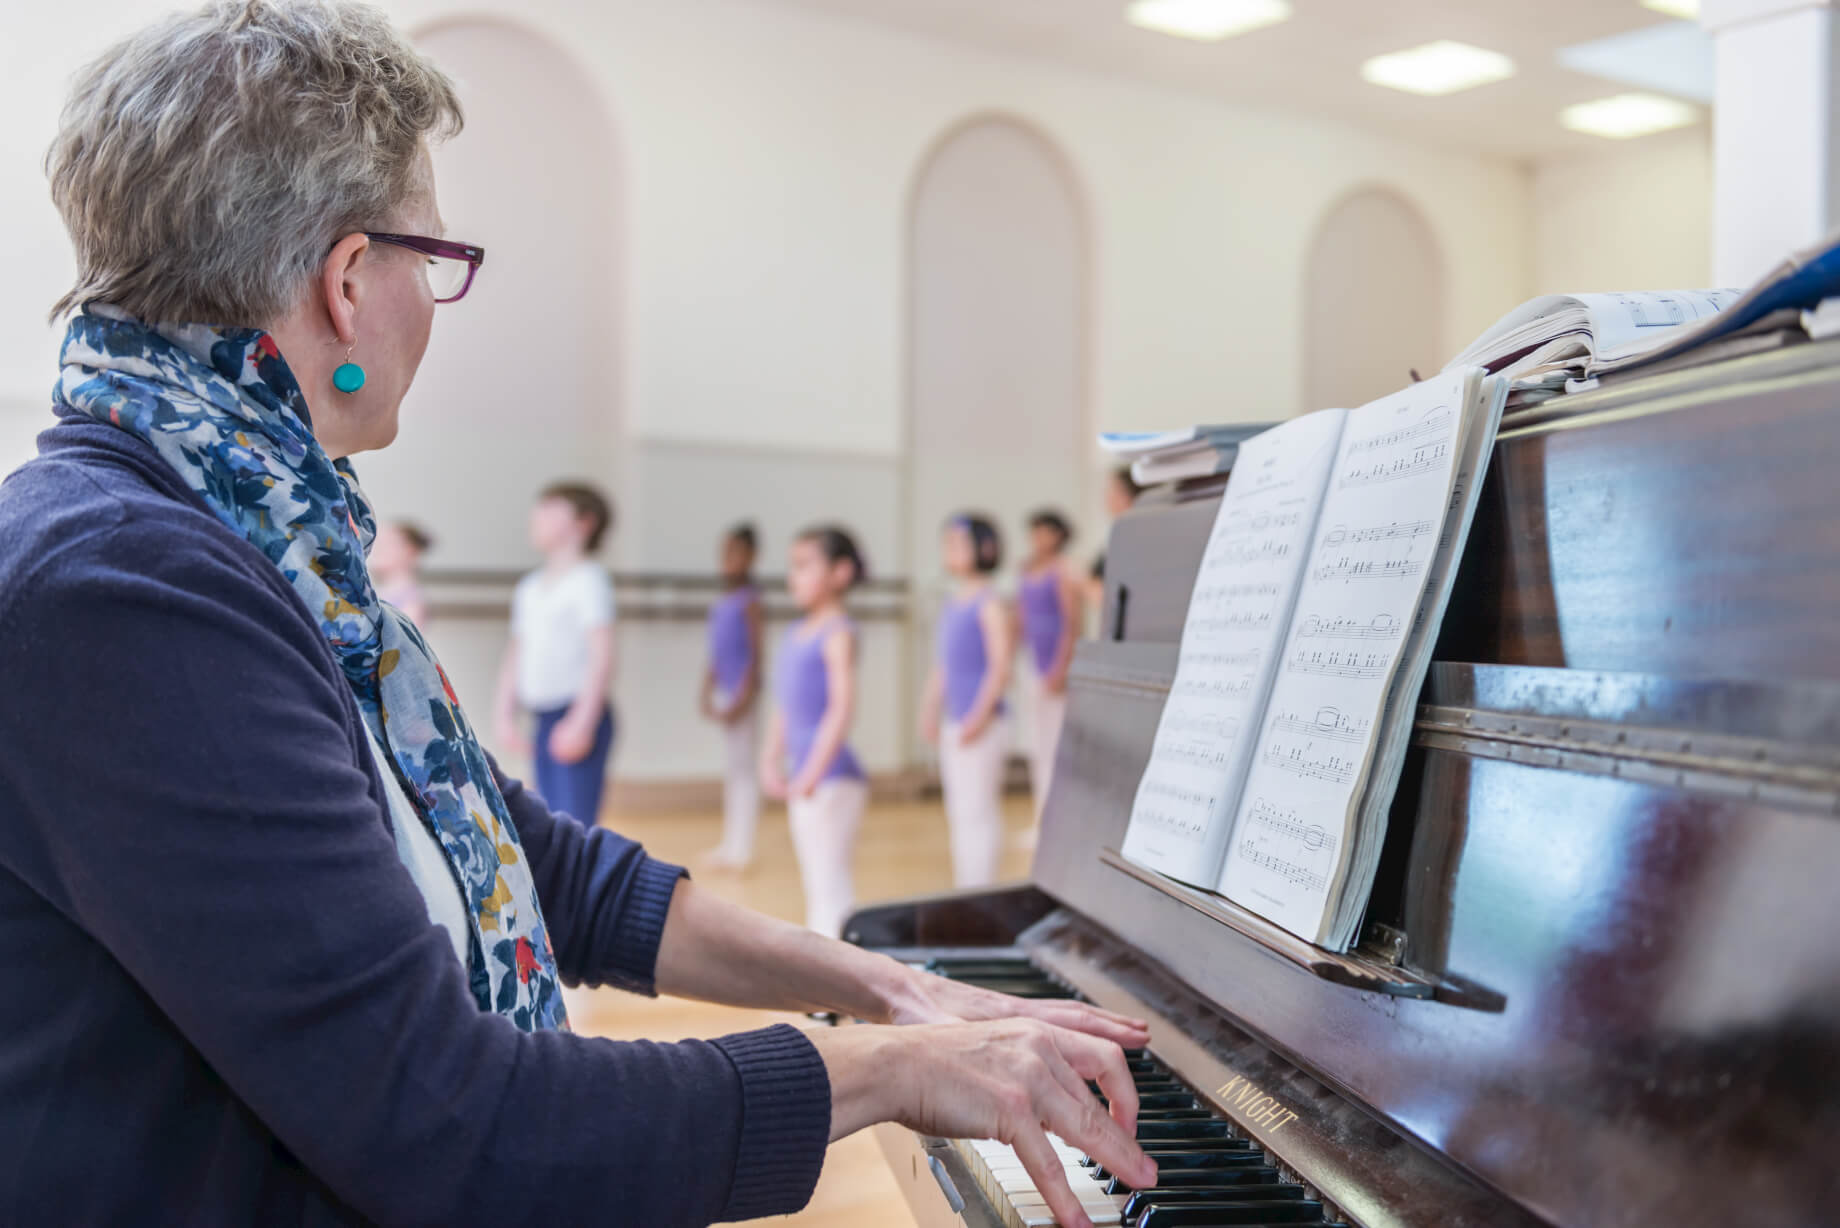 rnsd-pianist-ballet-classes-teacher-at-piano-class-in-background-dance.jpg